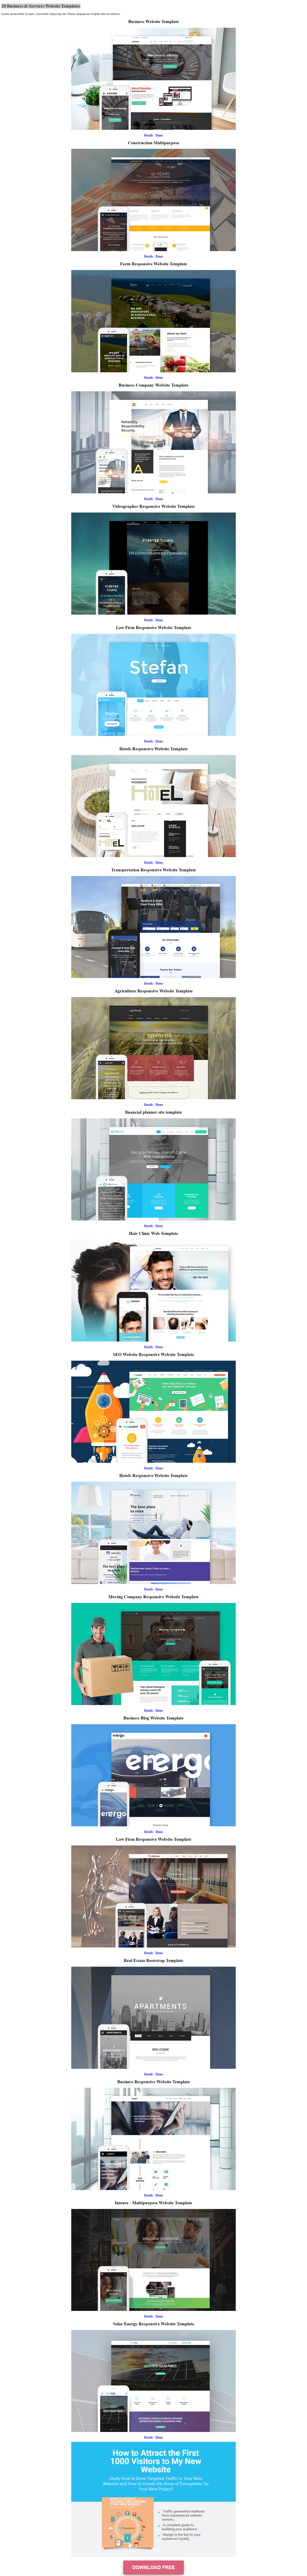 20-Business-&-Services-Website-Templates